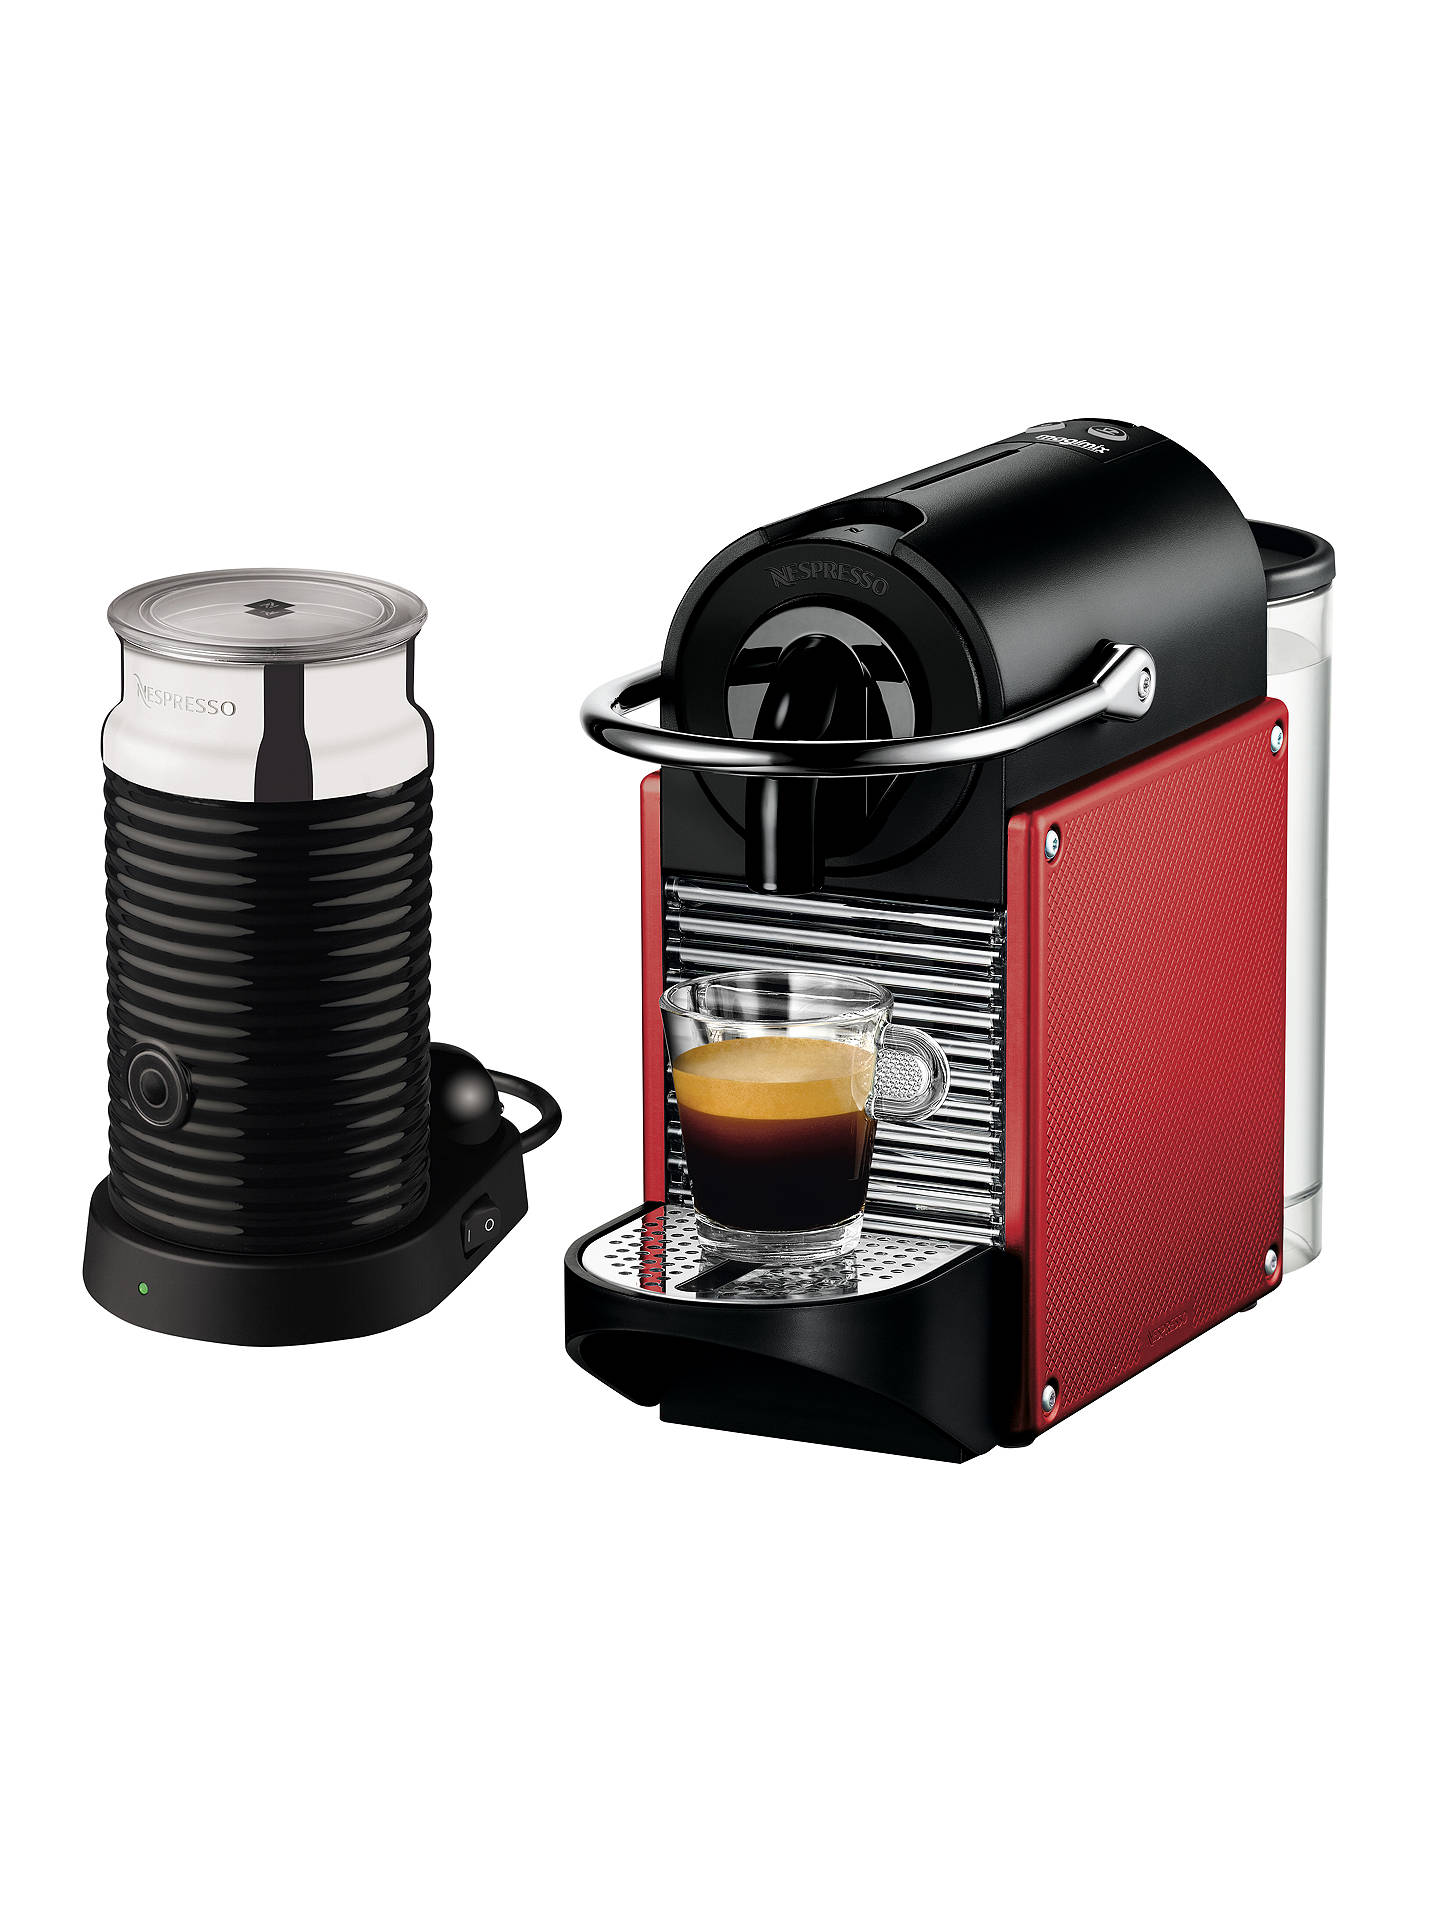 Nespresso Pixie Carmin Coffee Maker And Aeroccino By Magimix Red At